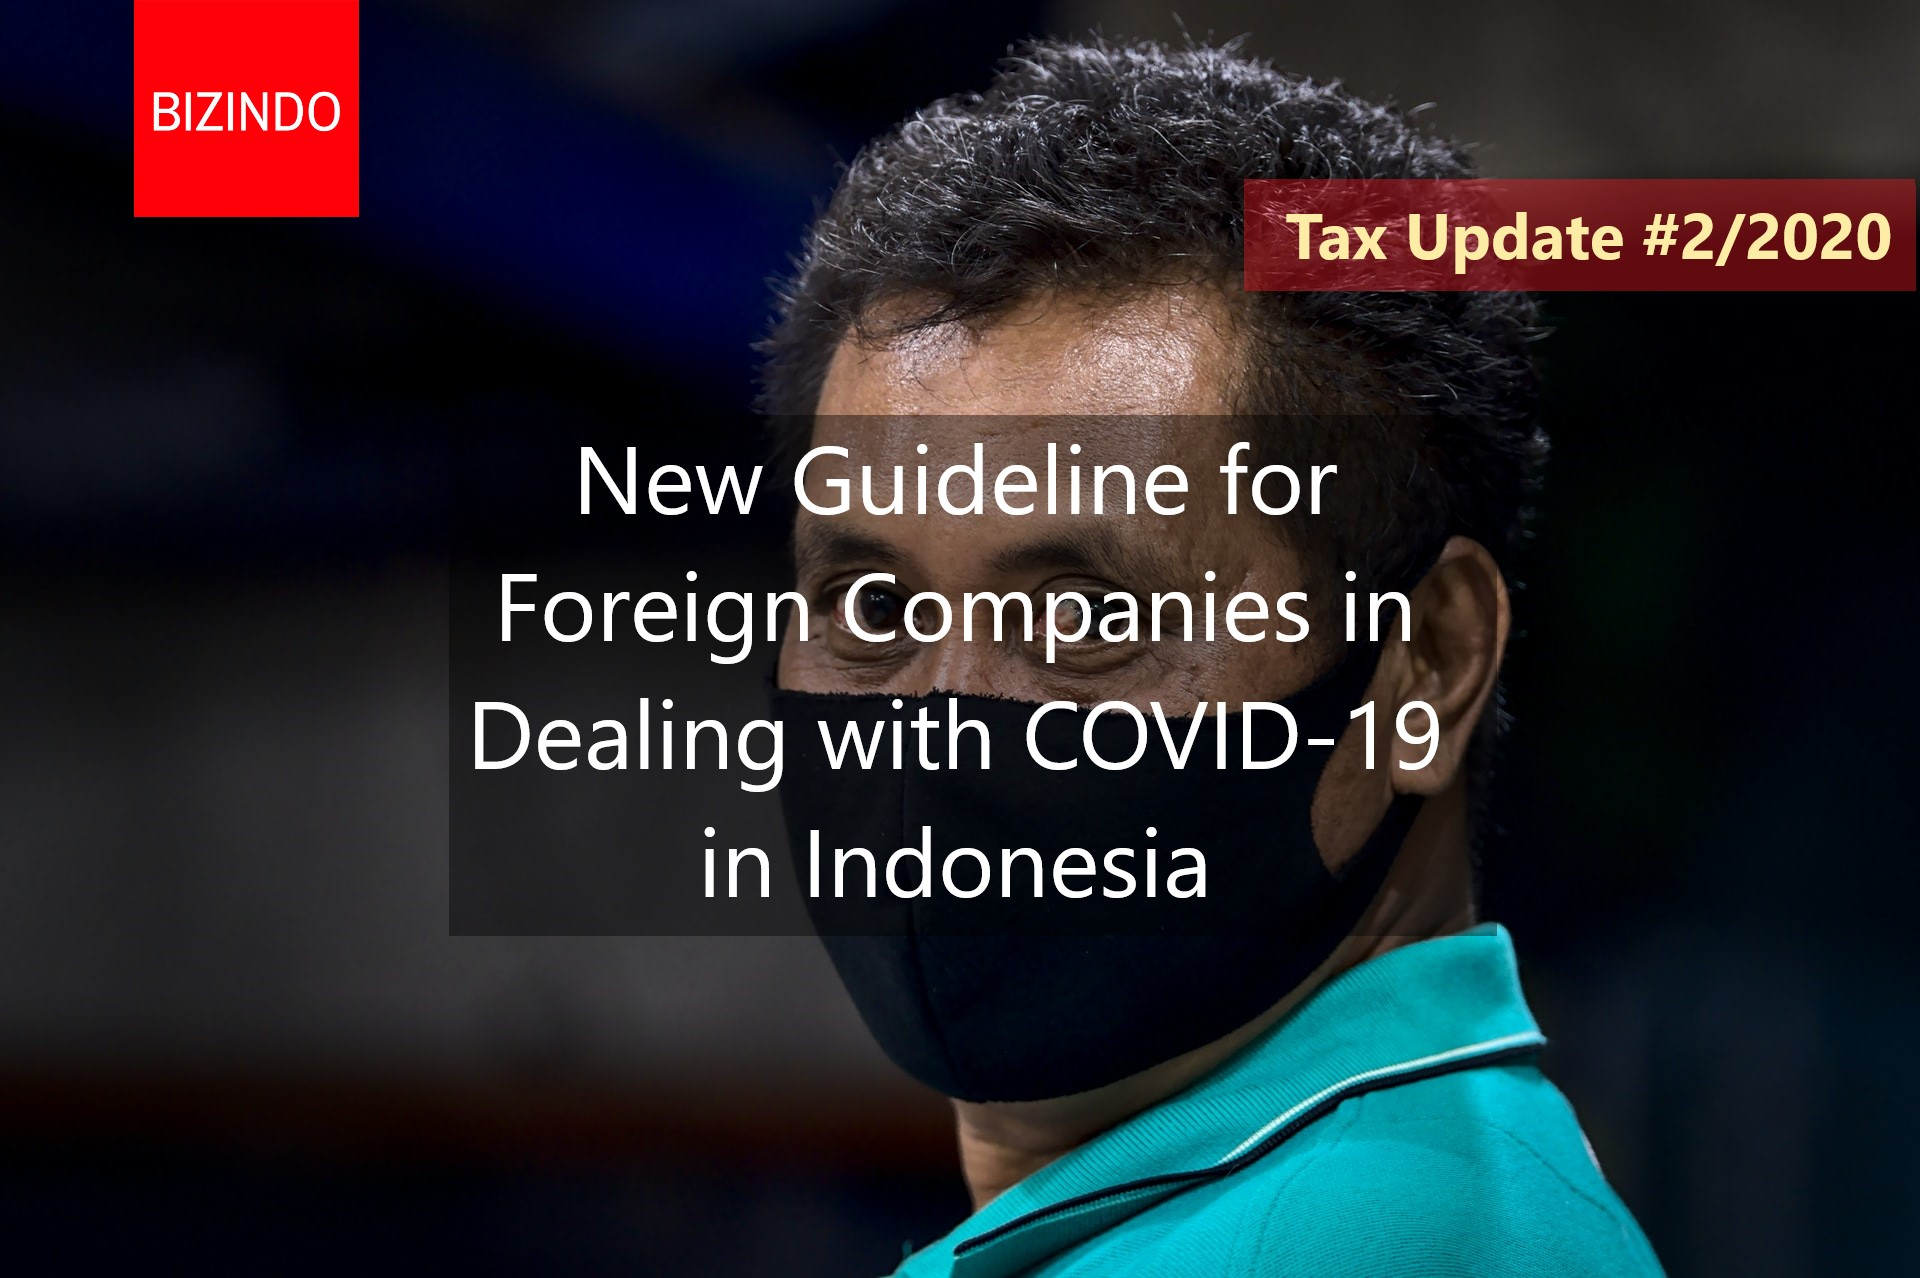 Tax Guideline for Foreign Companies in Dealing with Covid-19 in Indonesia